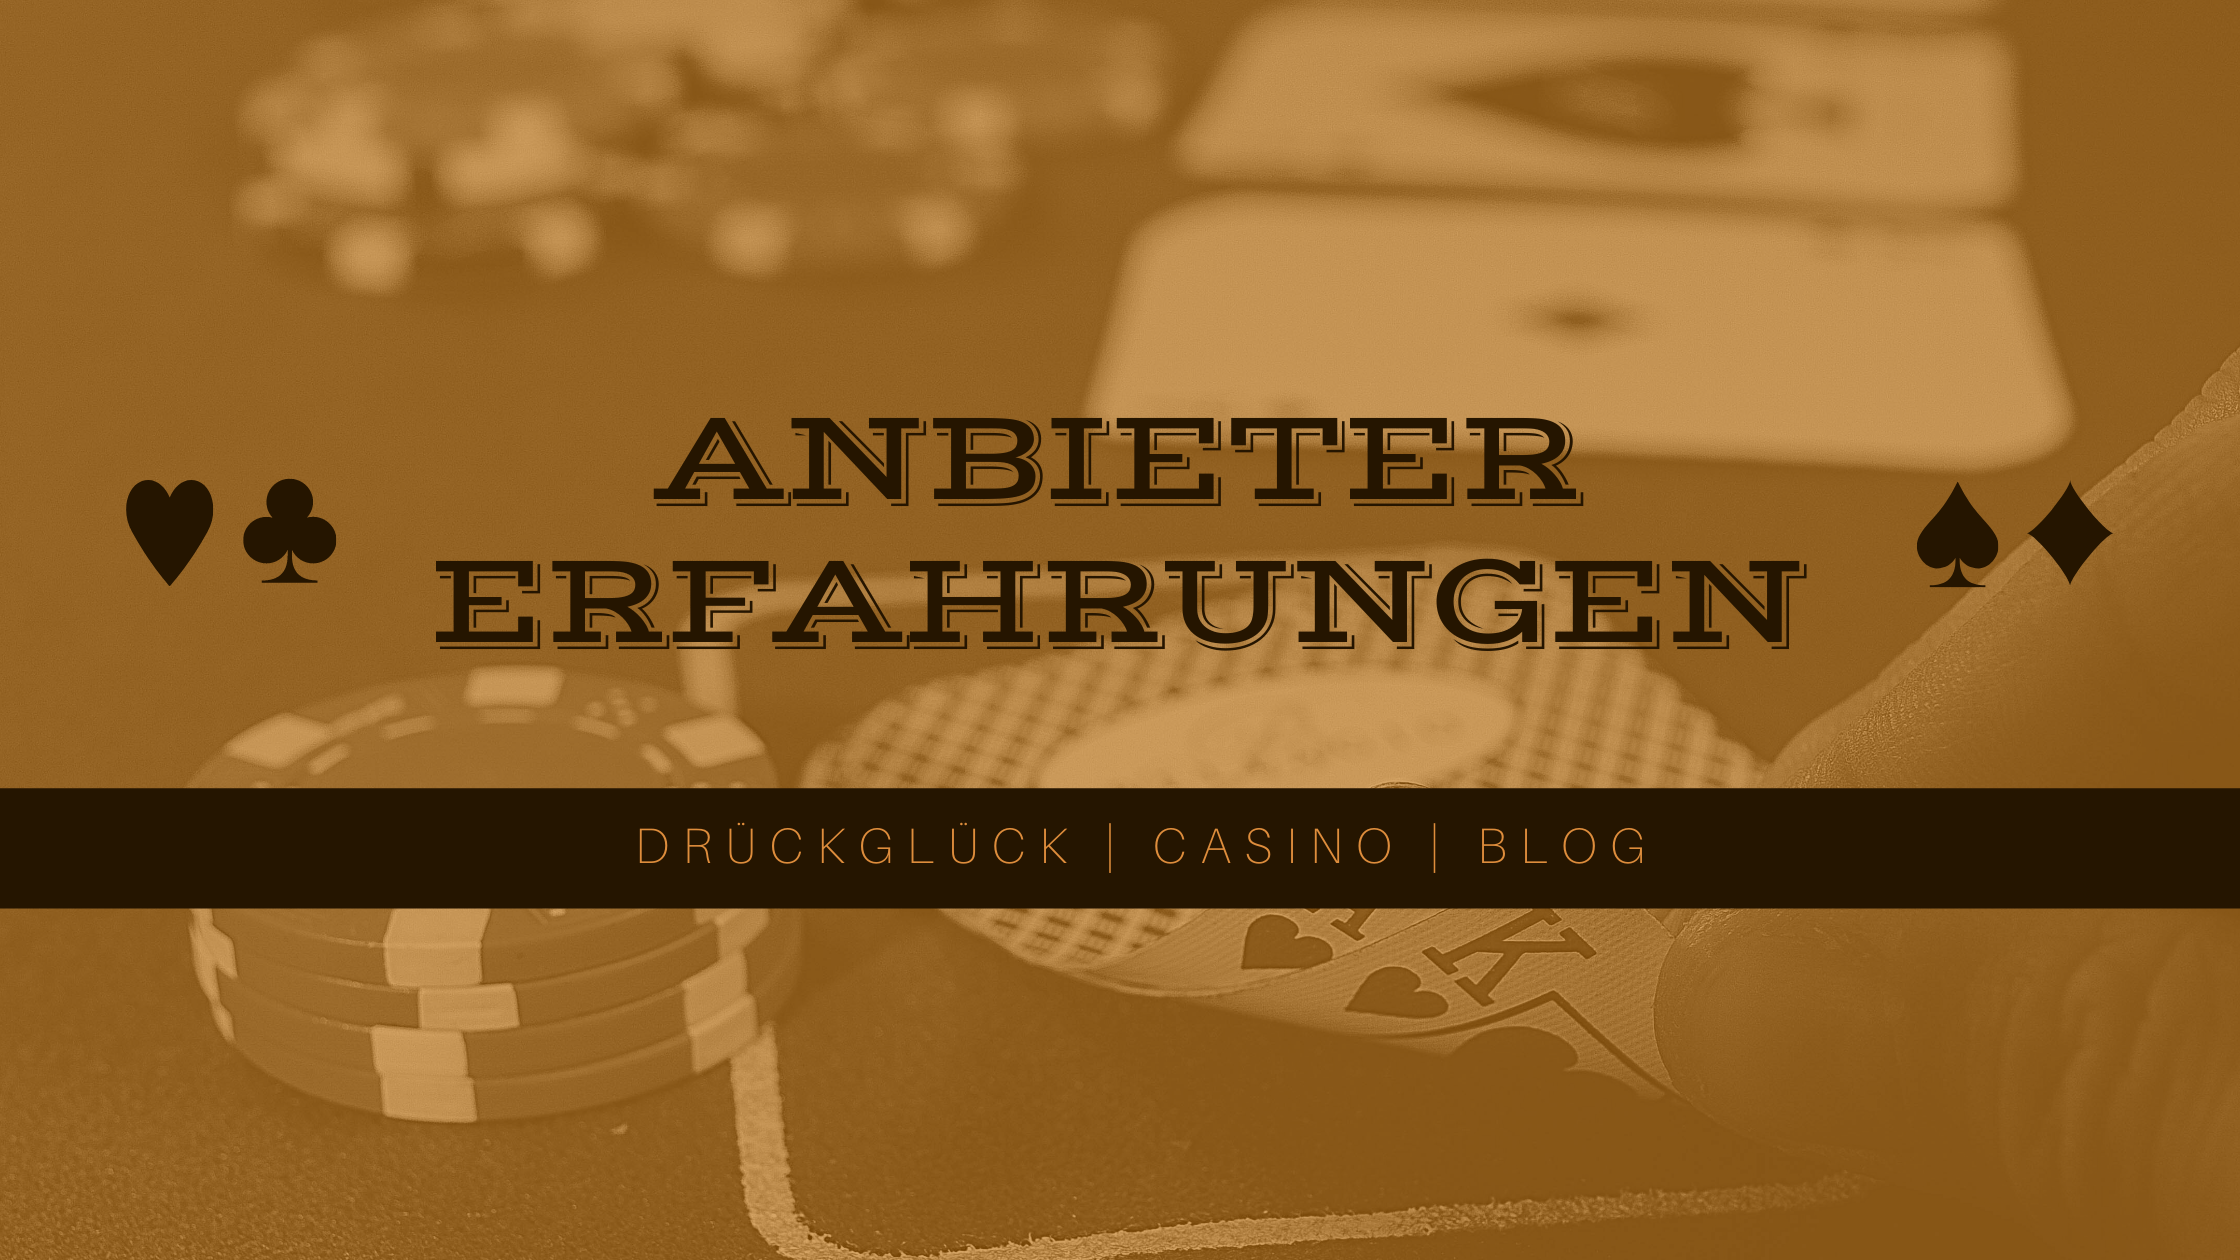 drückglück casino review